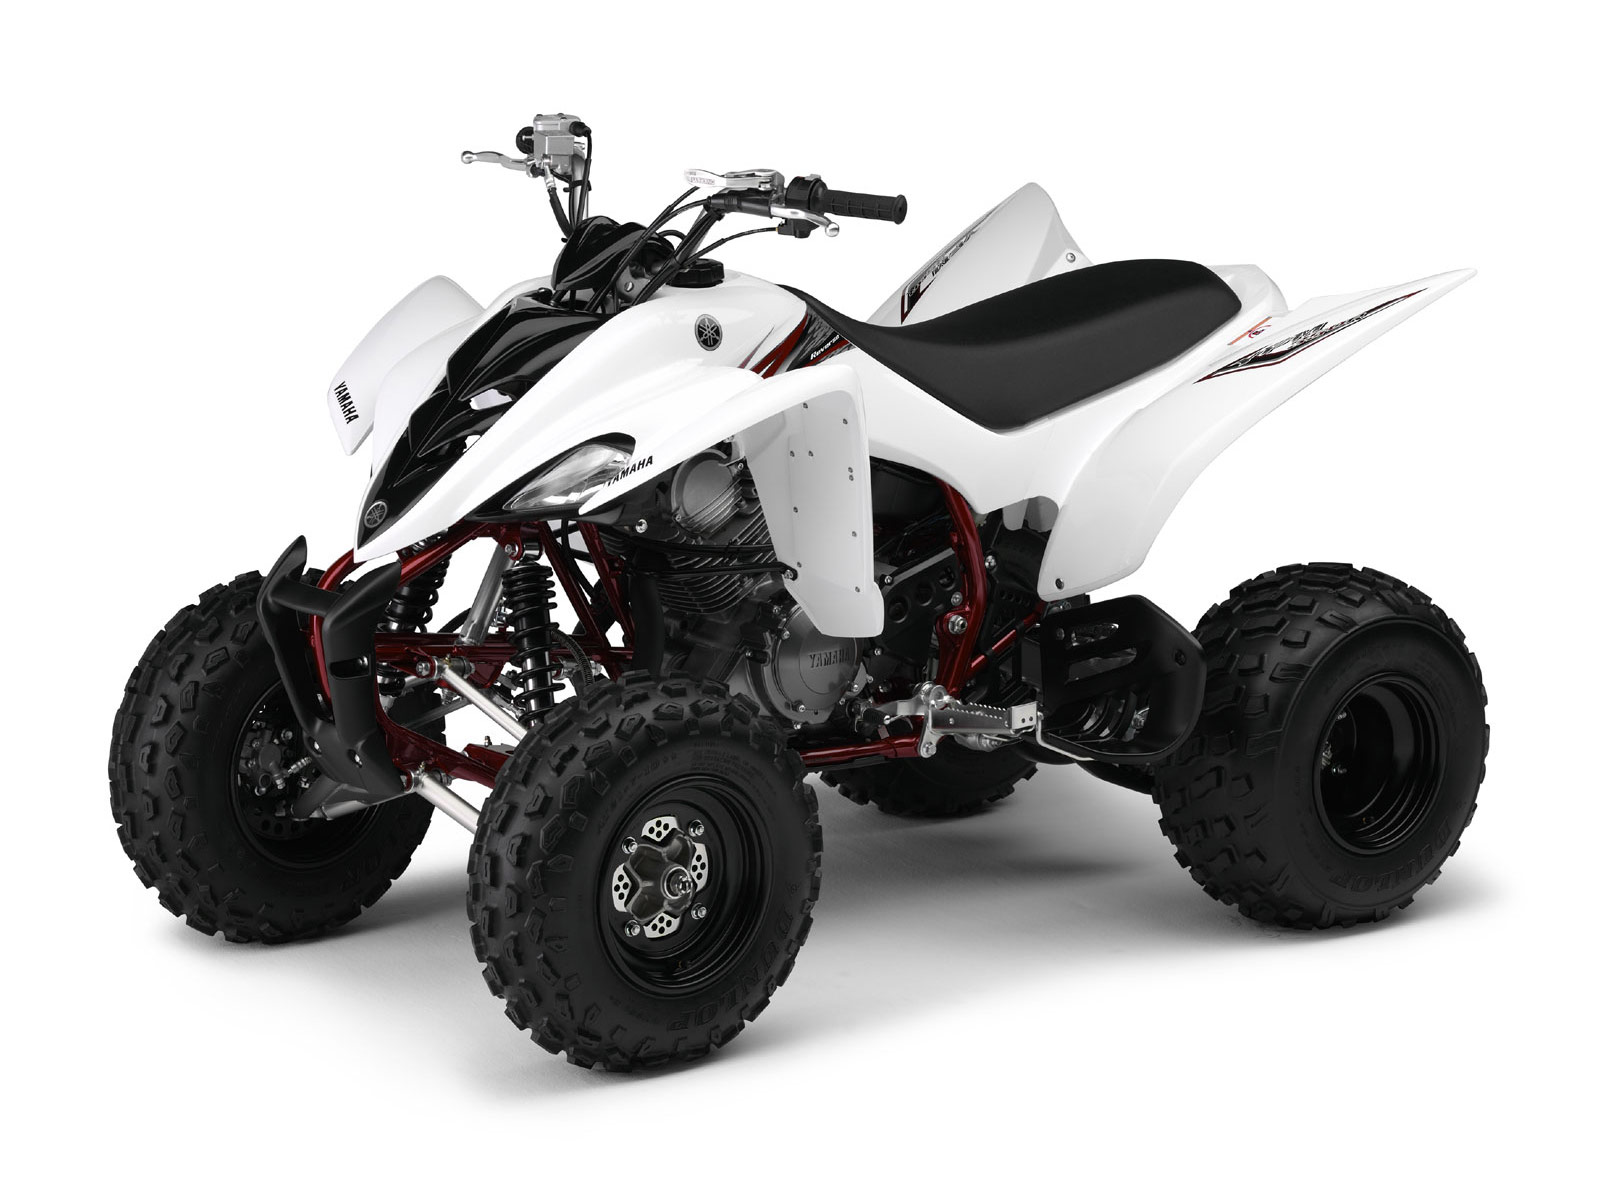 yamaha raptor 350 atv pictures 2009 accident lawyer. Black Bedroom Furniture Sets. Home Design Ideas